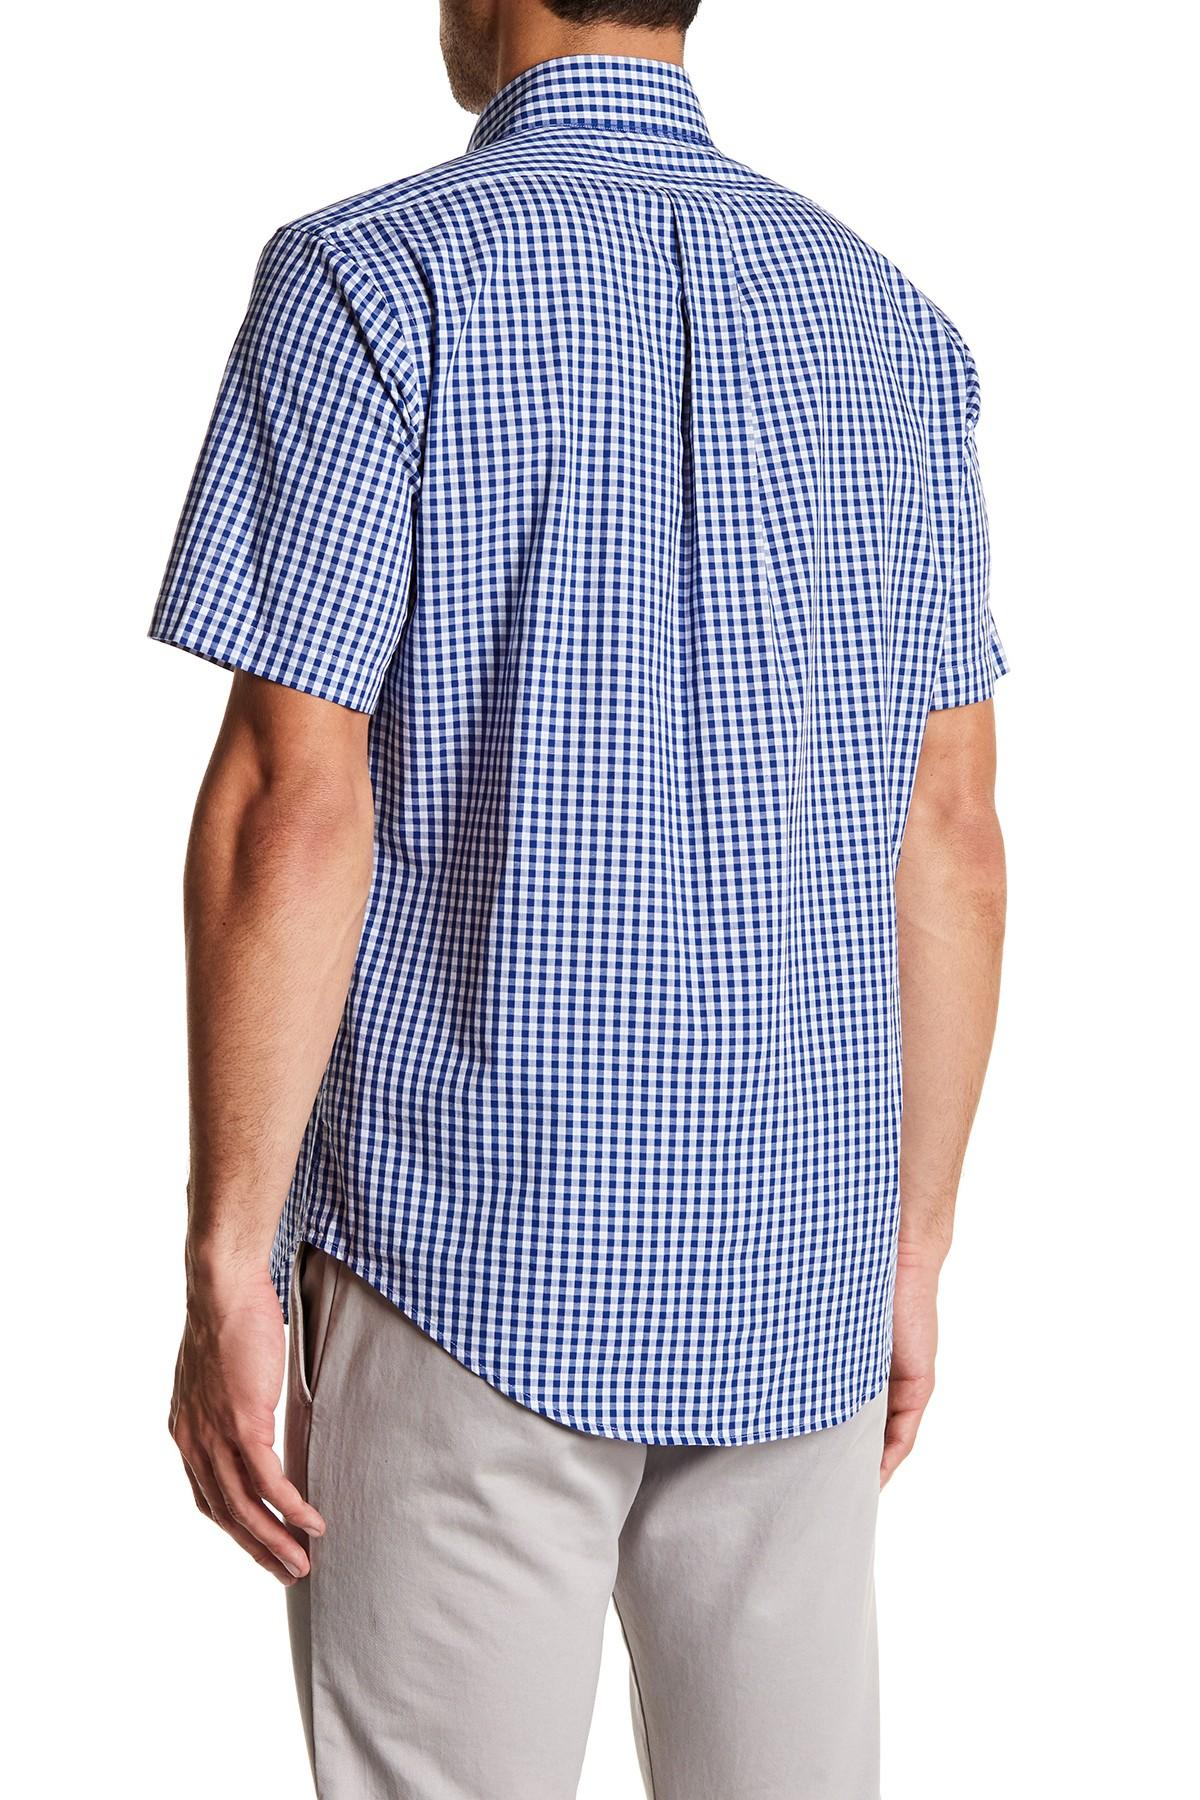 Lyst - Brooks Brothers Gingham Print Short Sleeve Shirt in ...